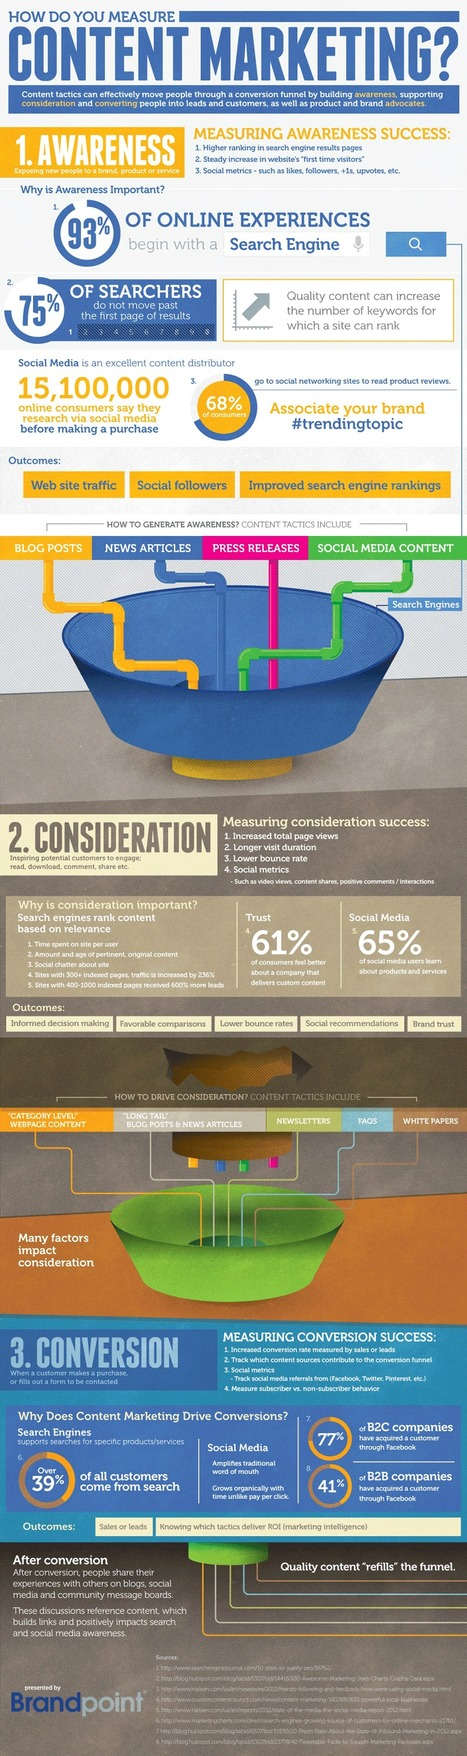 How to Measure Content Marketing Success | Infographic | Social Buzz | Scoop.it